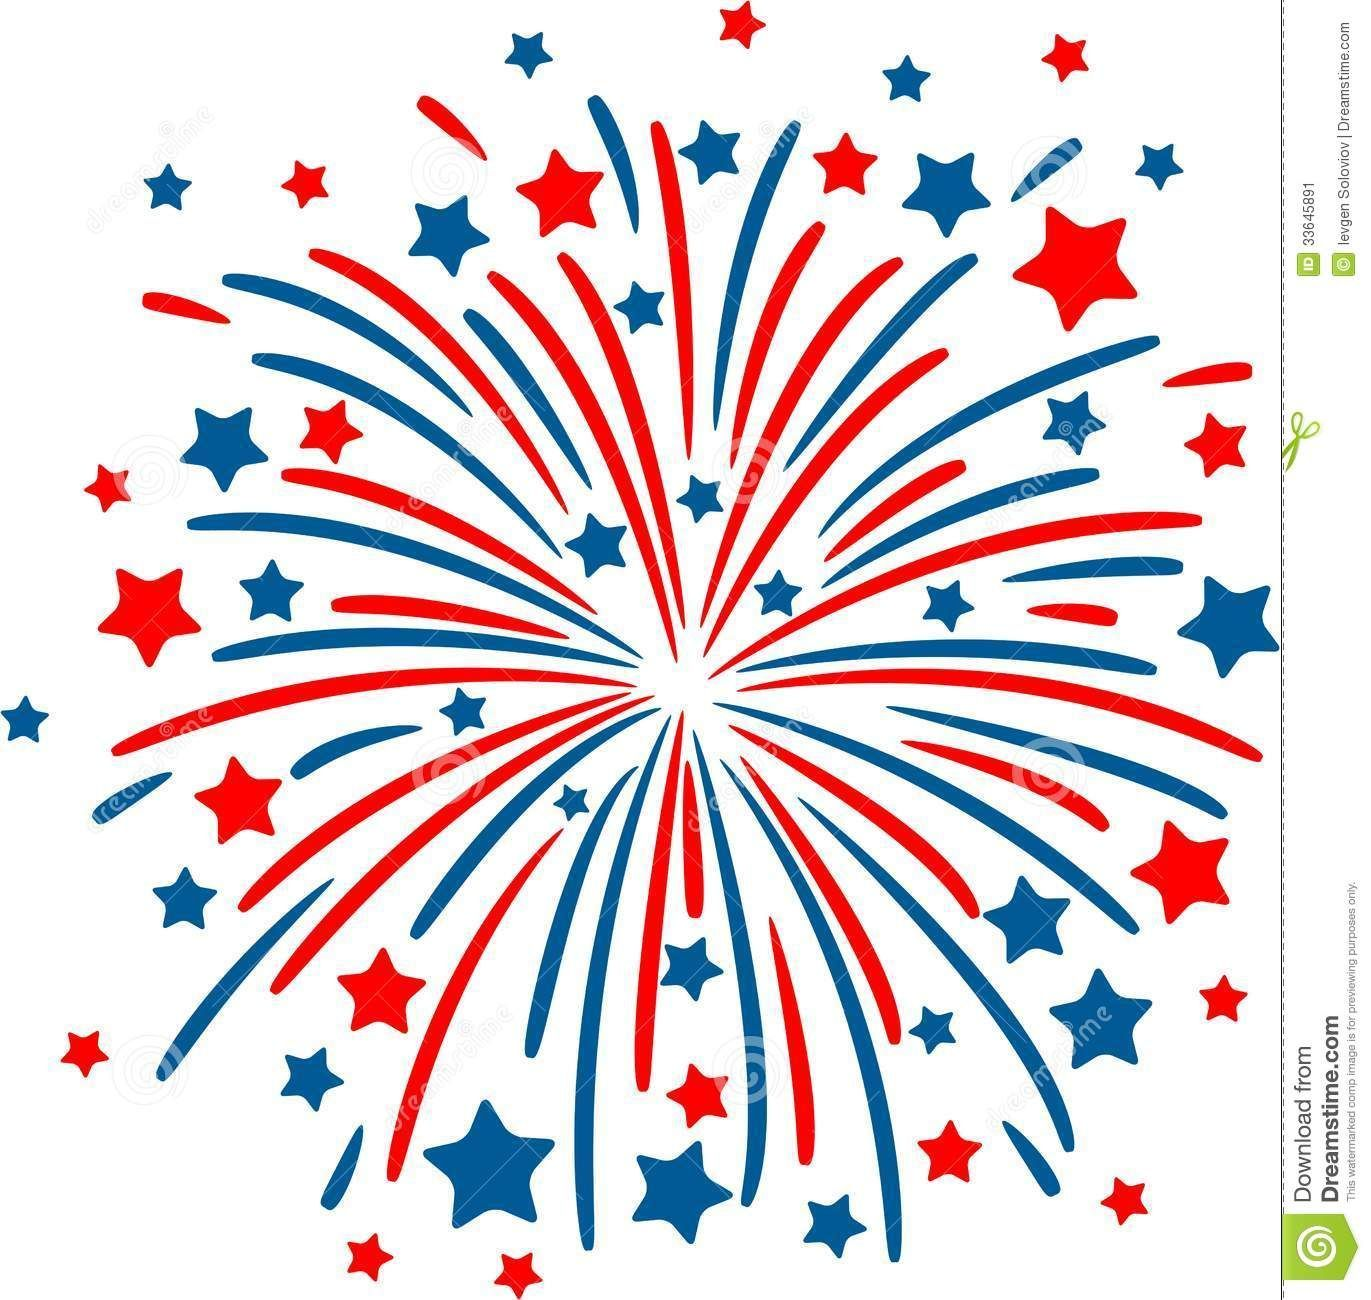 Cute firecracker clipart image library download Cute firecracker clipart 1 » Clipart Portal image library download